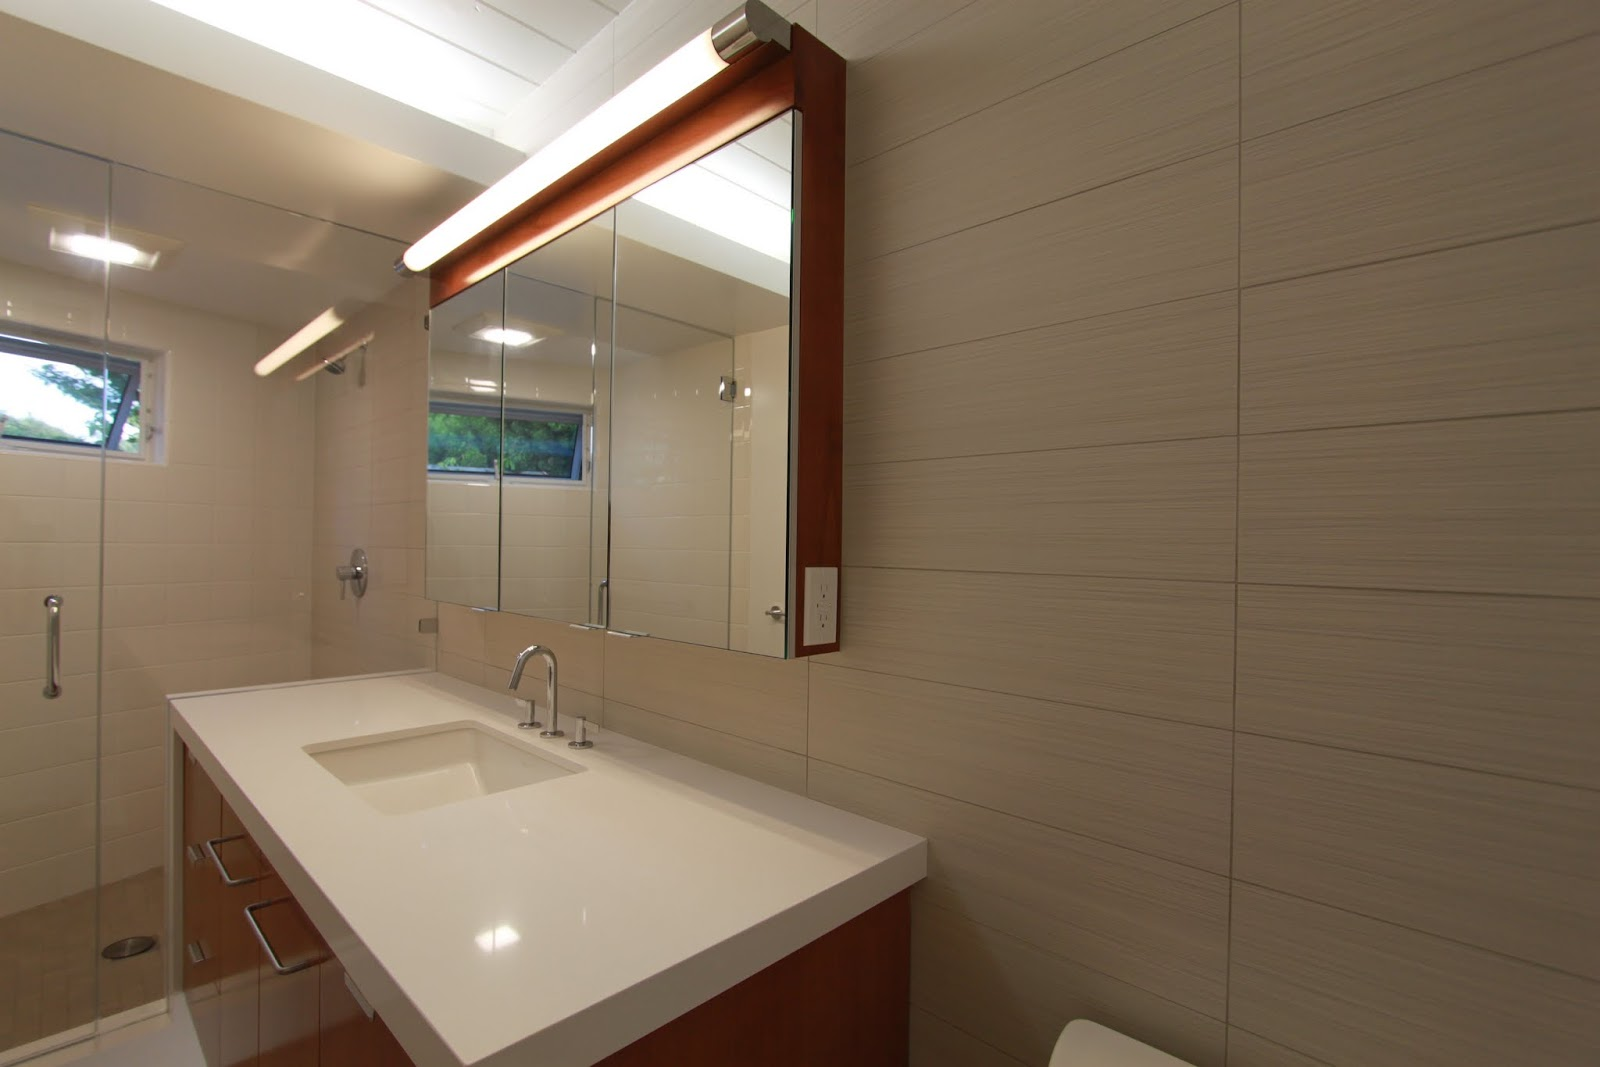 Mid Century Modern Bathroom Remodel top five favorite features mid-century bathroom remodel | mid